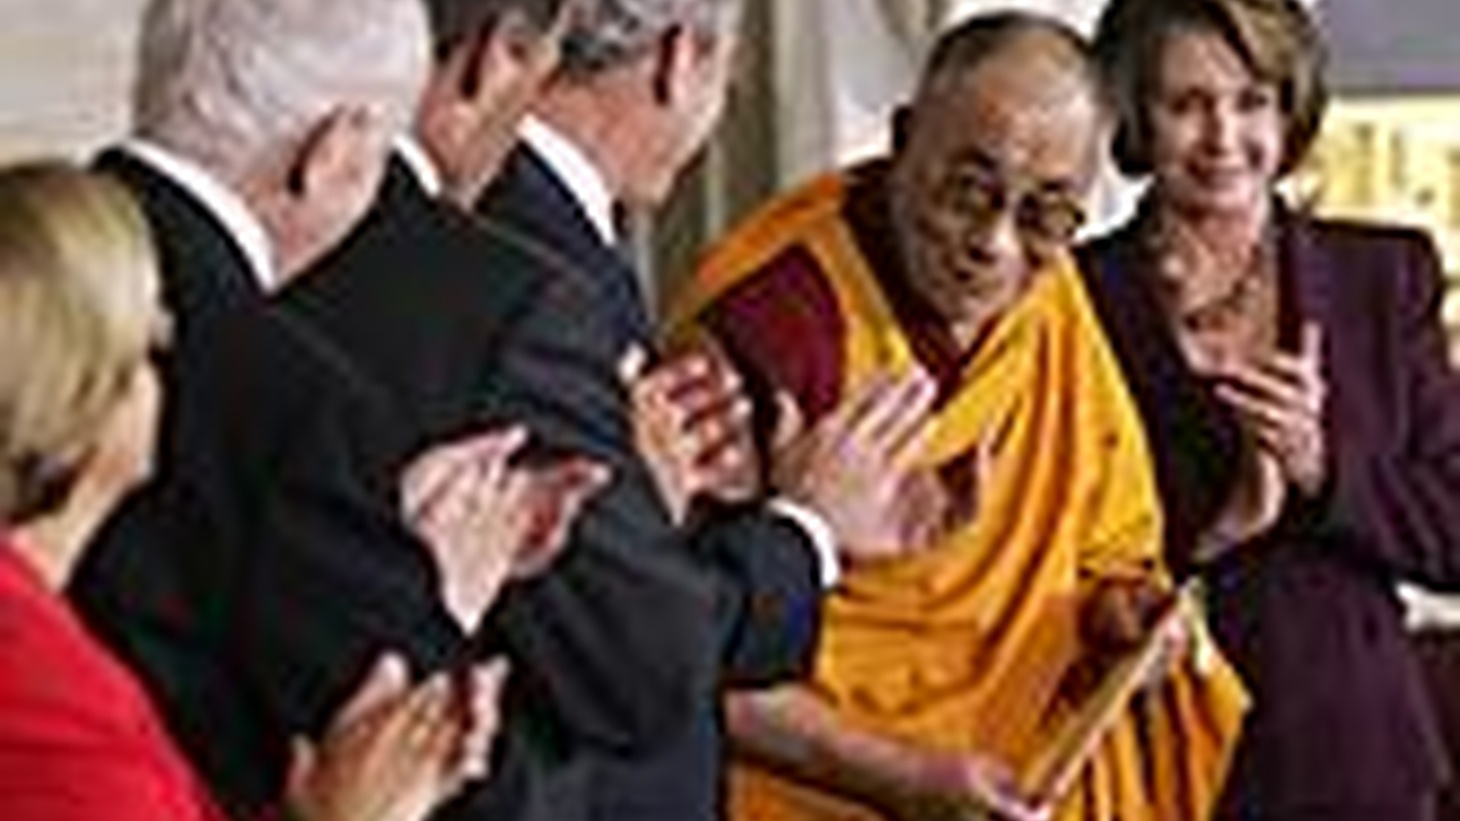 George Bush today publicly recognized the Dalai Lama despite China's official outrage. During 50 years of repression, the religious leader has preached non-violence to the Tibetan people. Also, Turkey approves military action against separatist Kurds in Iraq, and Senators get reassuring words from the President's nominee to replace Alberto Gonzales.